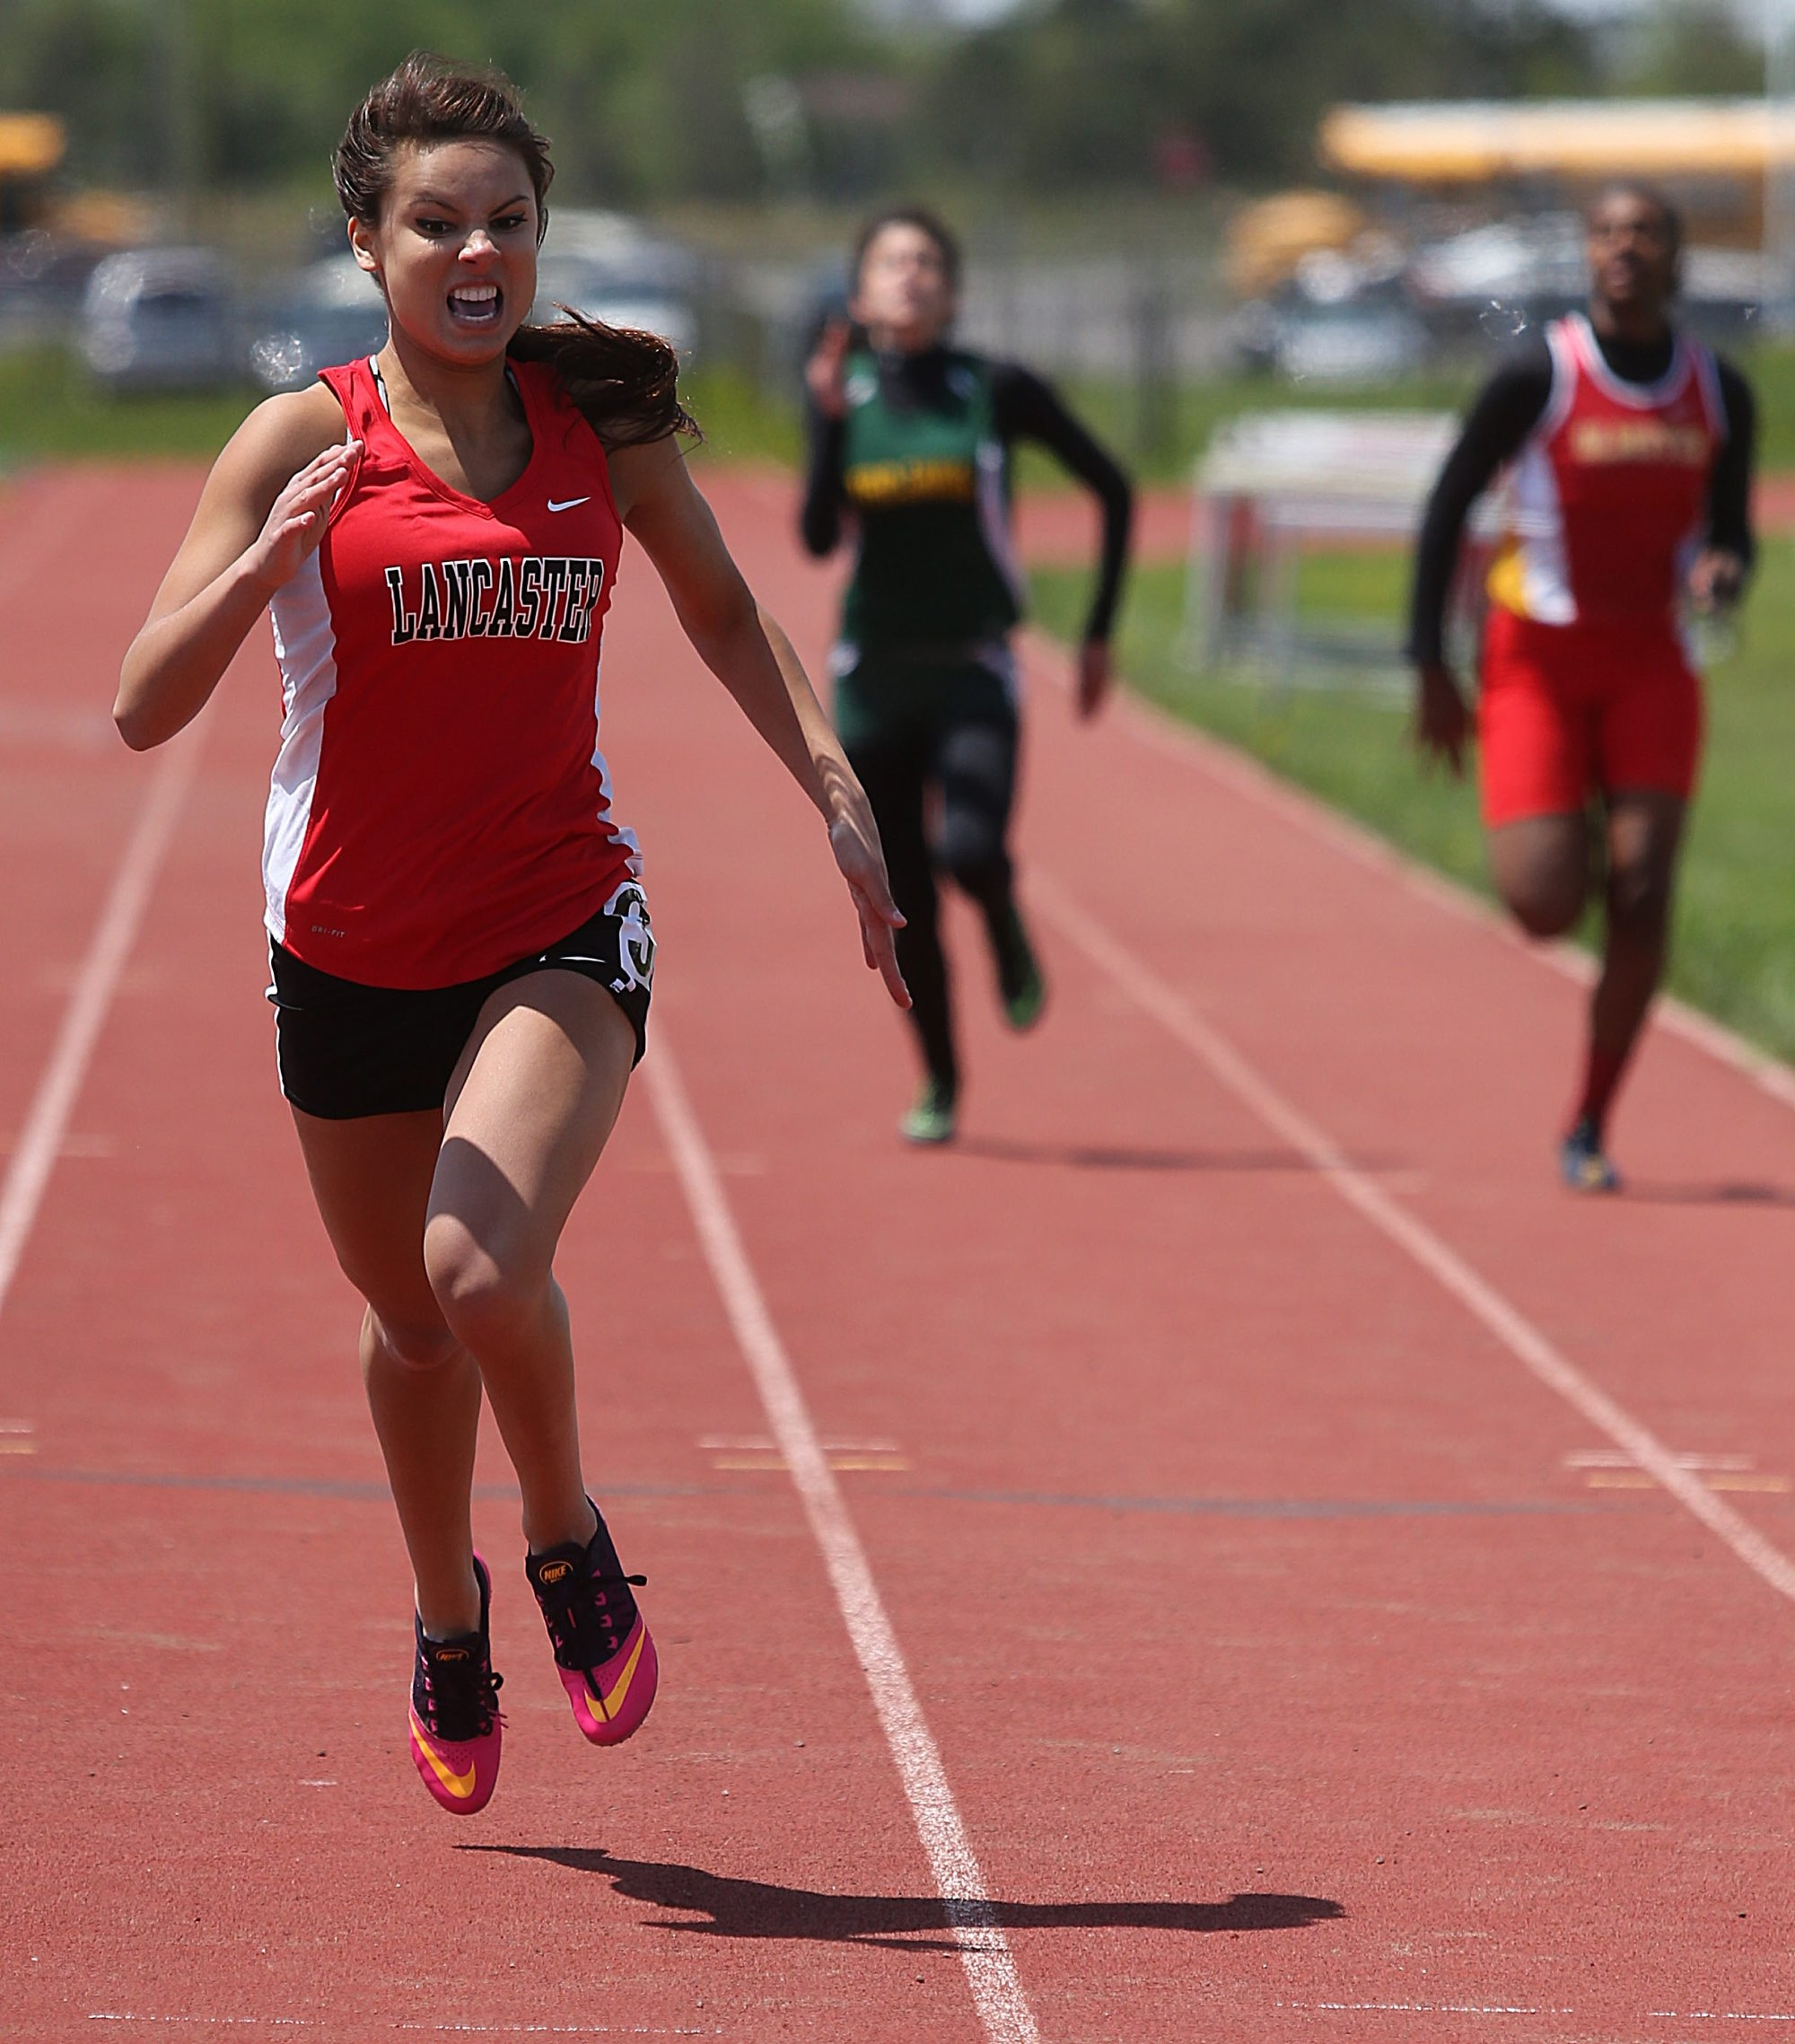 Tiffany Cycon of Lancaster won the 200 meter dash in 26.24 seconds at the Western New York Girls Track and Field Classic on Saturday.